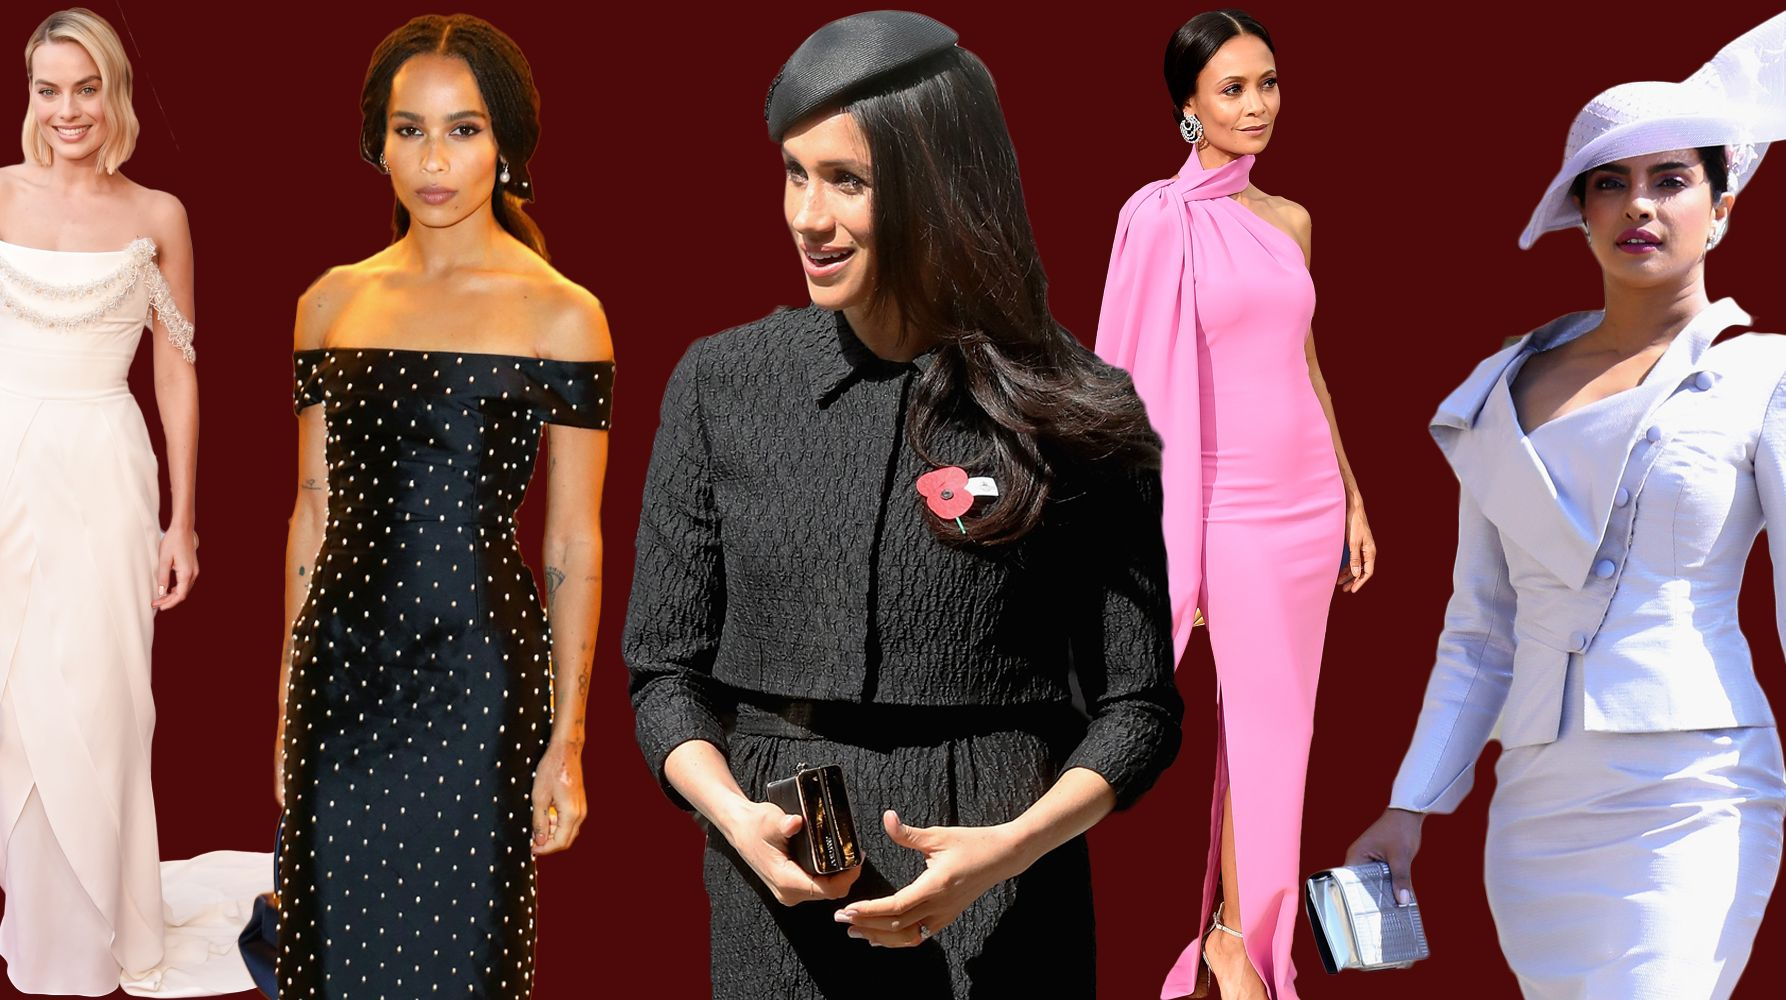 ee57bdf5dbe Flipboard: The 10 best-dressed women of 2018